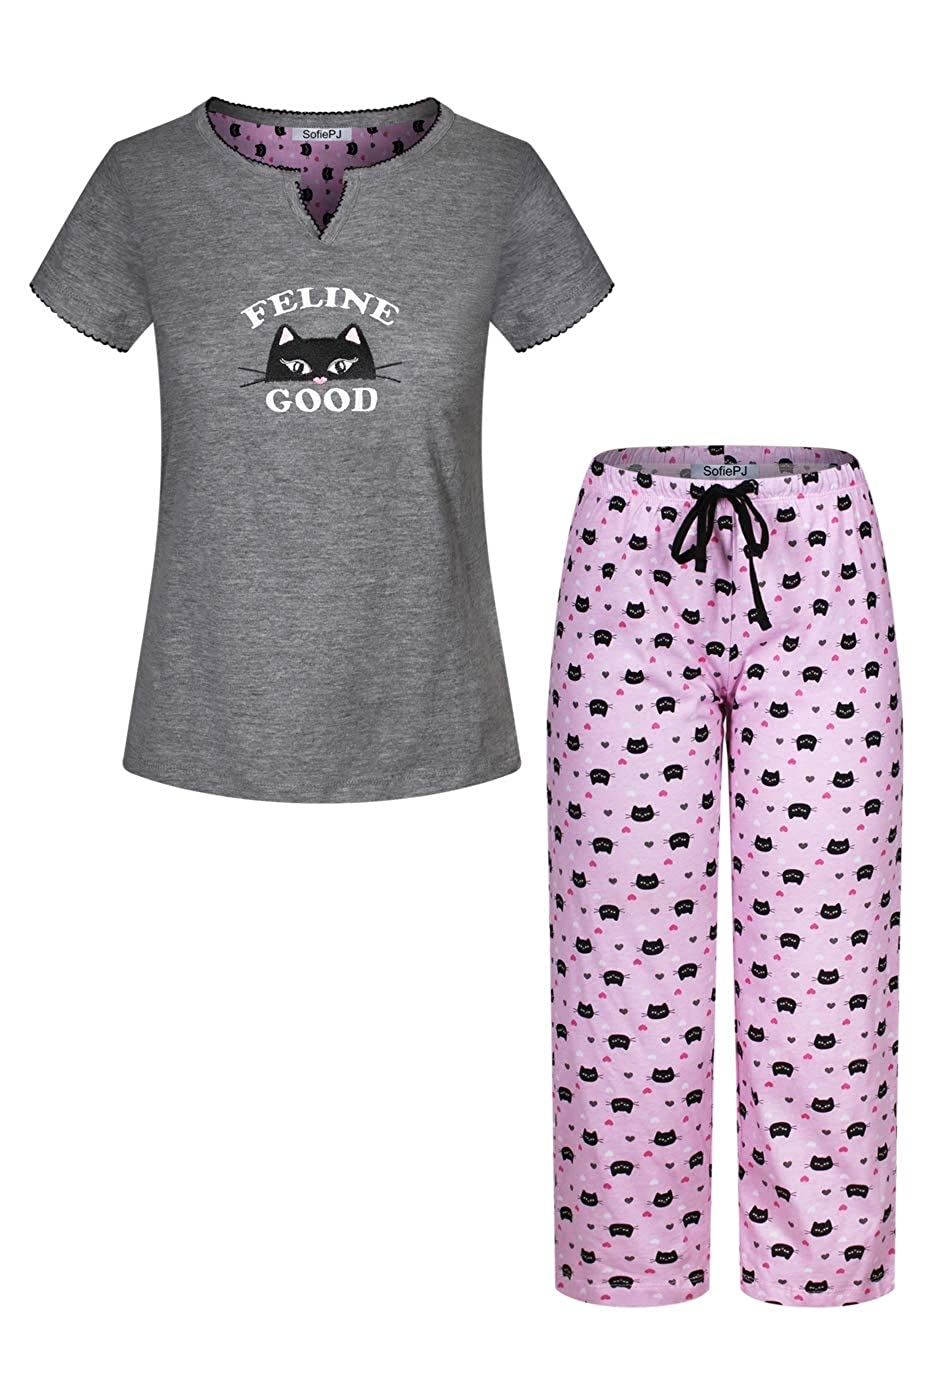 Charcoal Pink Kitten SofiePJ Women's Embroidery Pure Cotton Sleepwear Capri Set